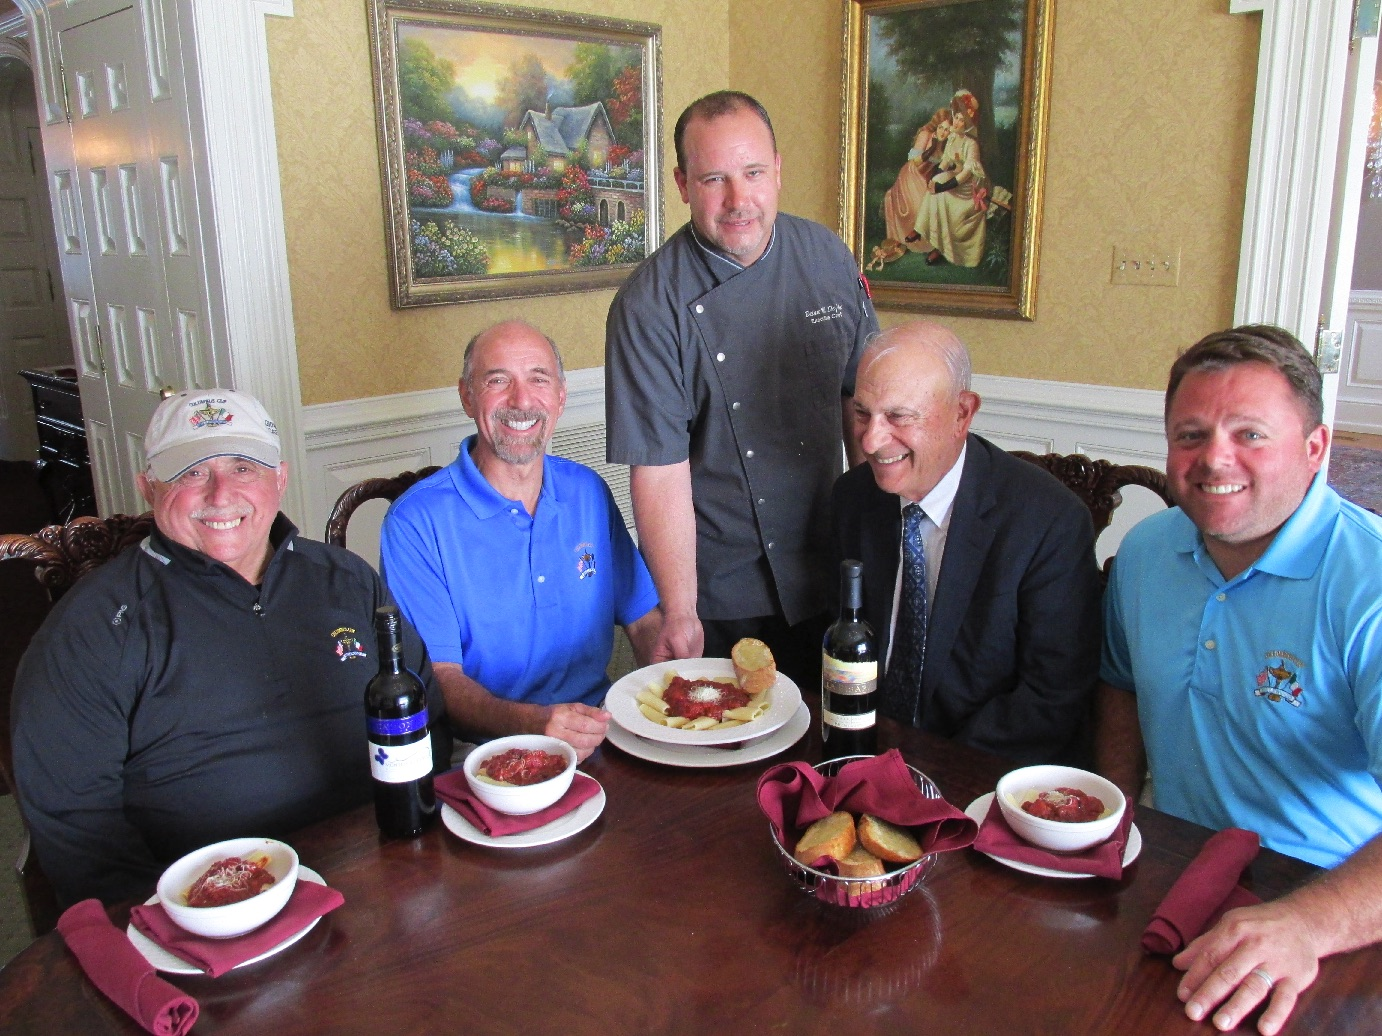 Columbus Cup Celebration at North Coventry's Bellewood CC Adds Traditional Italian Street Feast Dish